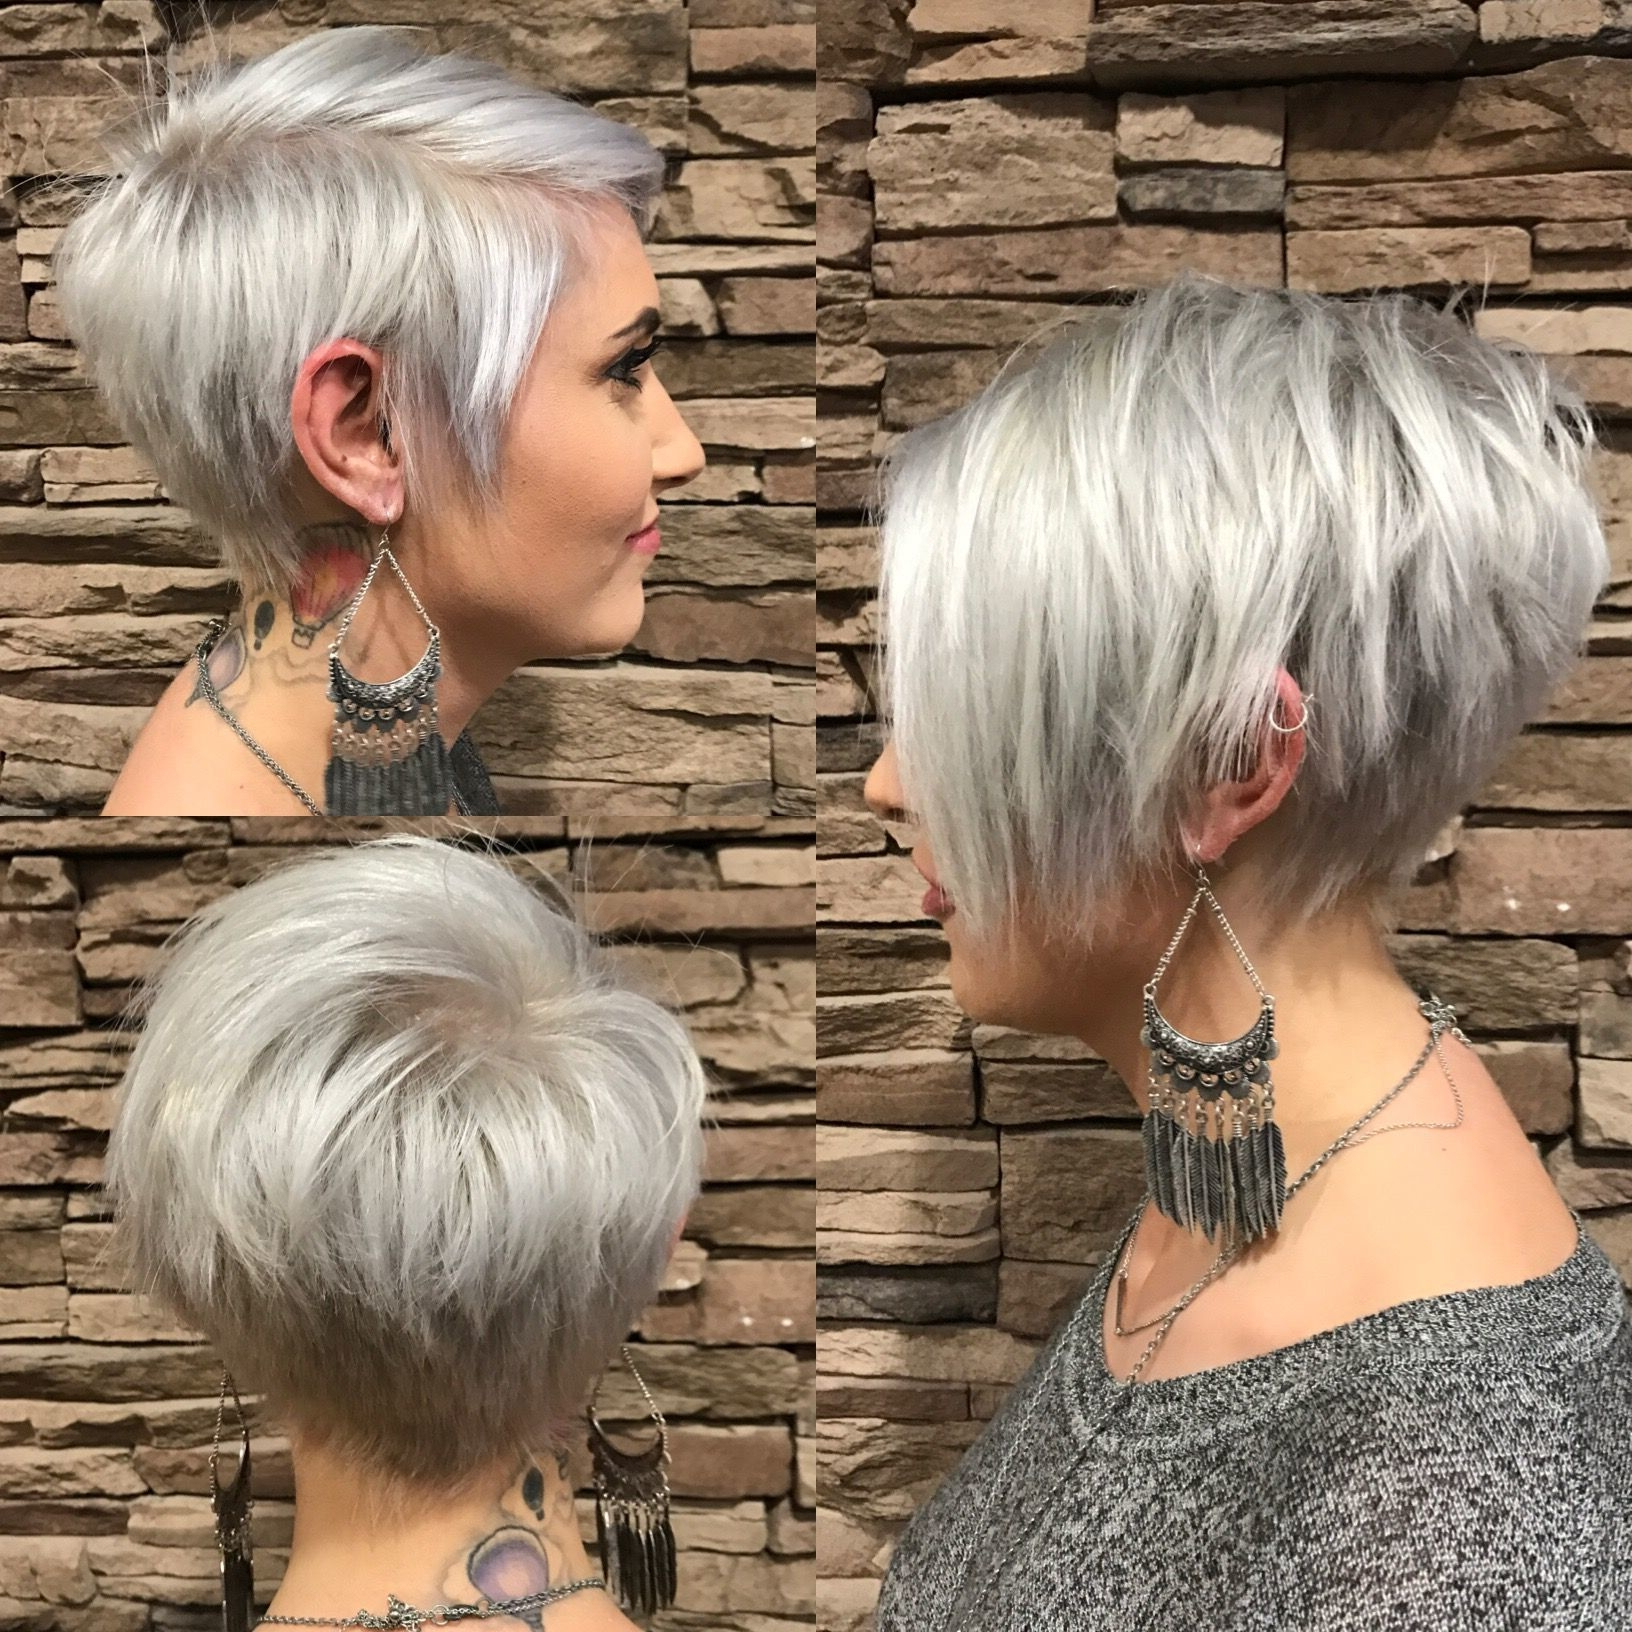 Asymmetric Haircuts For Thick Hair – Short And Cuts Hairstyles Regarding Asymmetric Short Haircuts (Gallery 9 of 25)